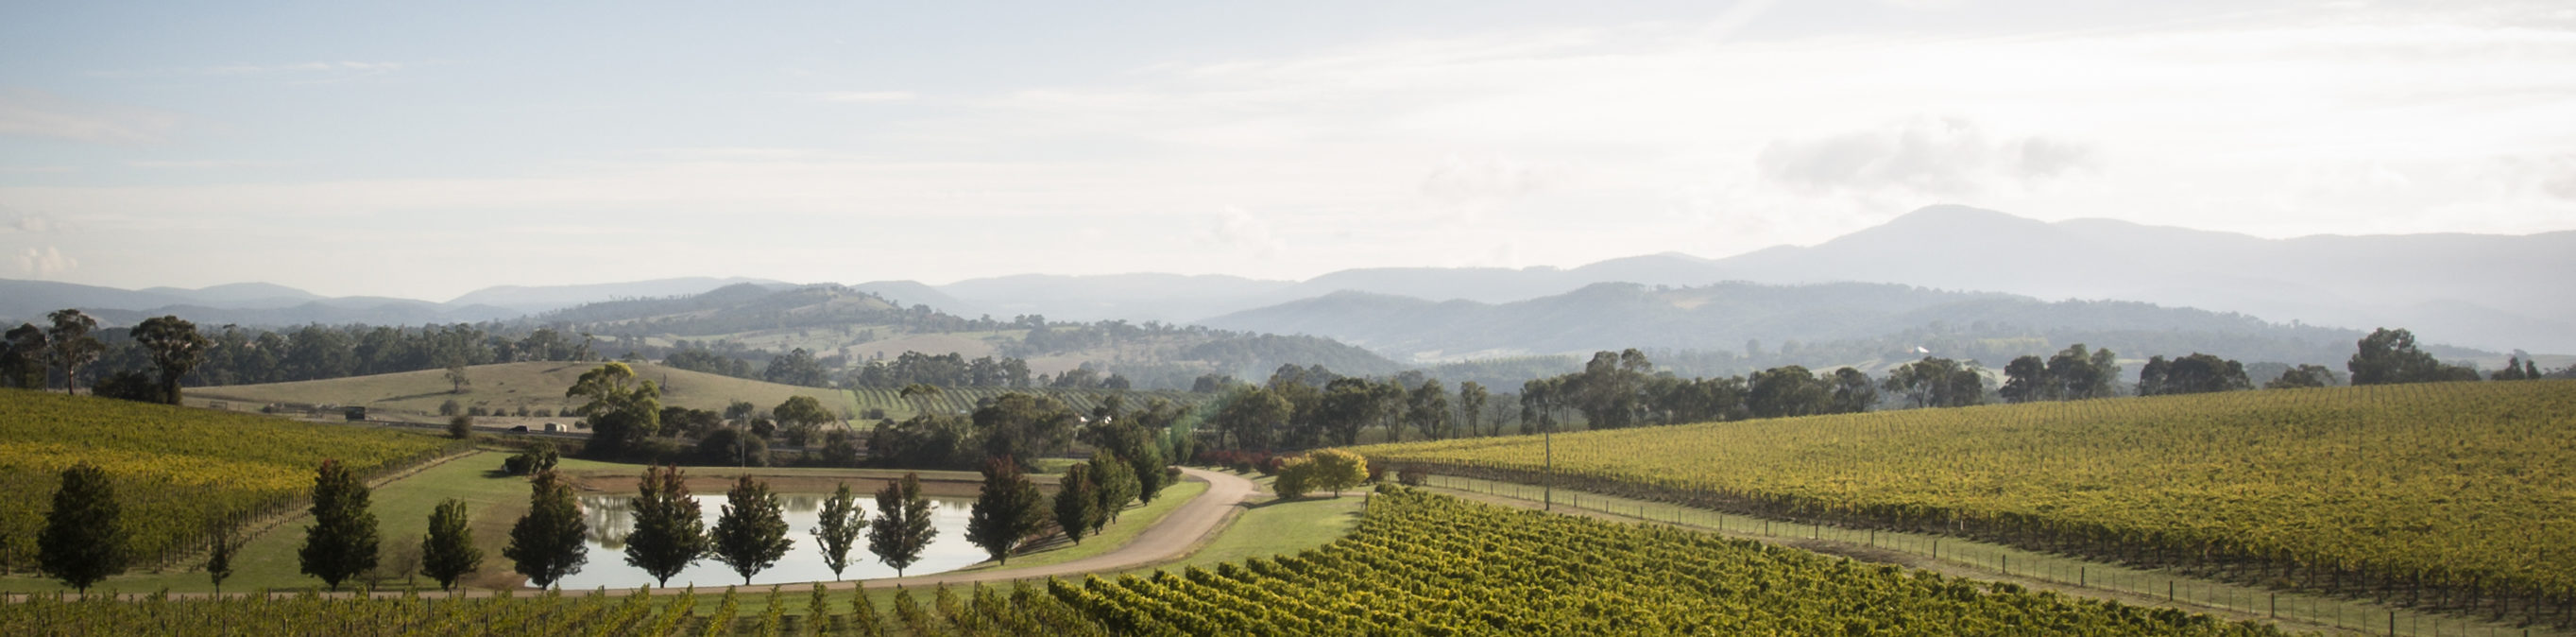 Oakridge_Coldstream_Winery_med res